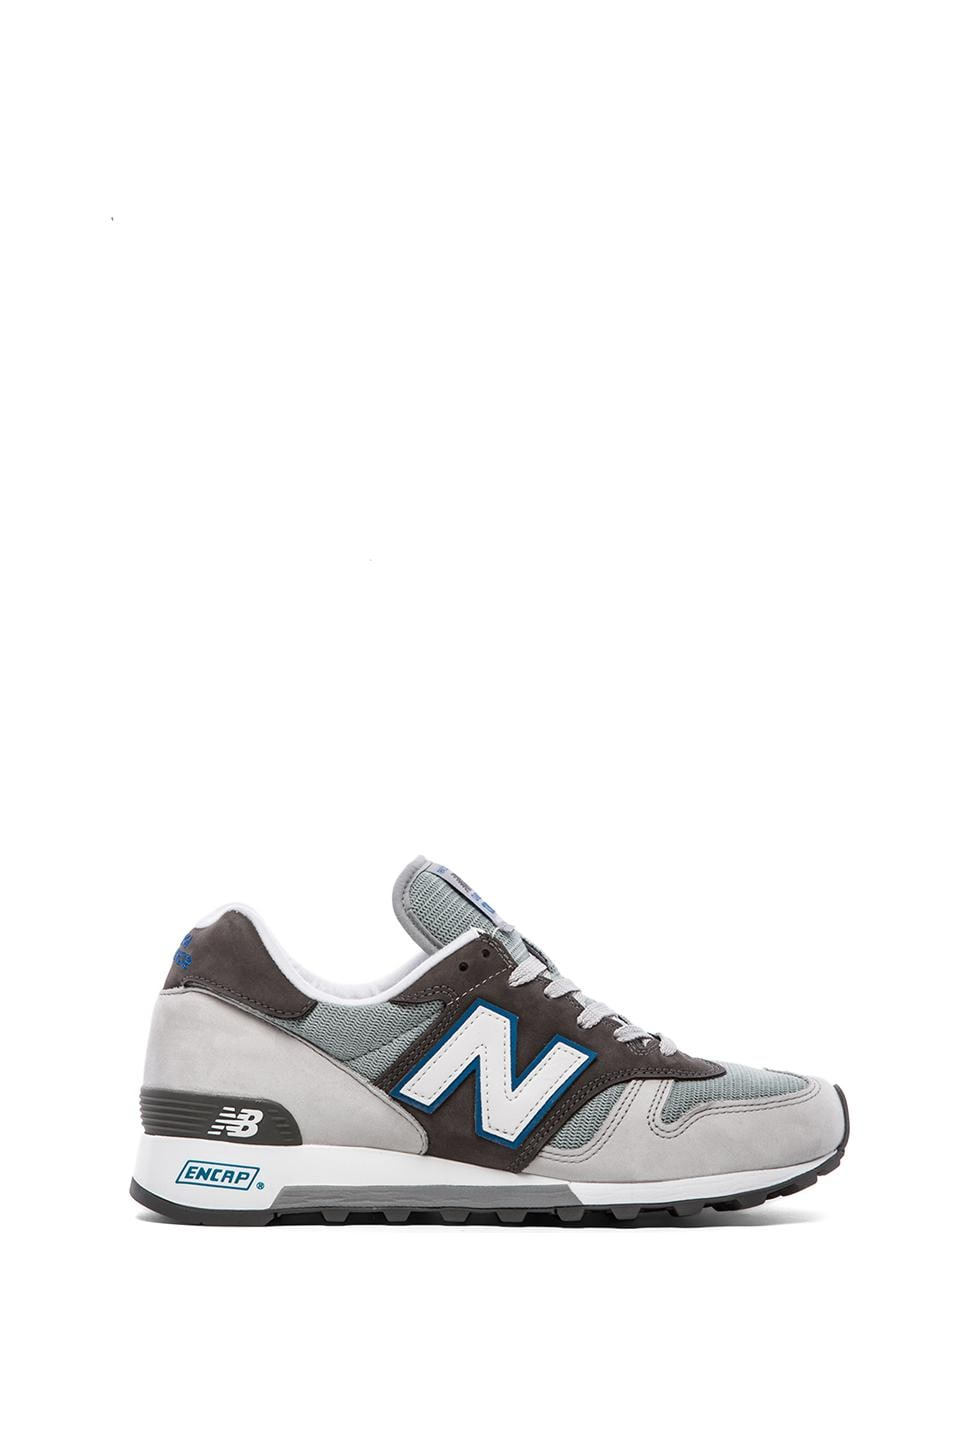 New Balance Made in USA M1300 in Blue Nubuck Mesh